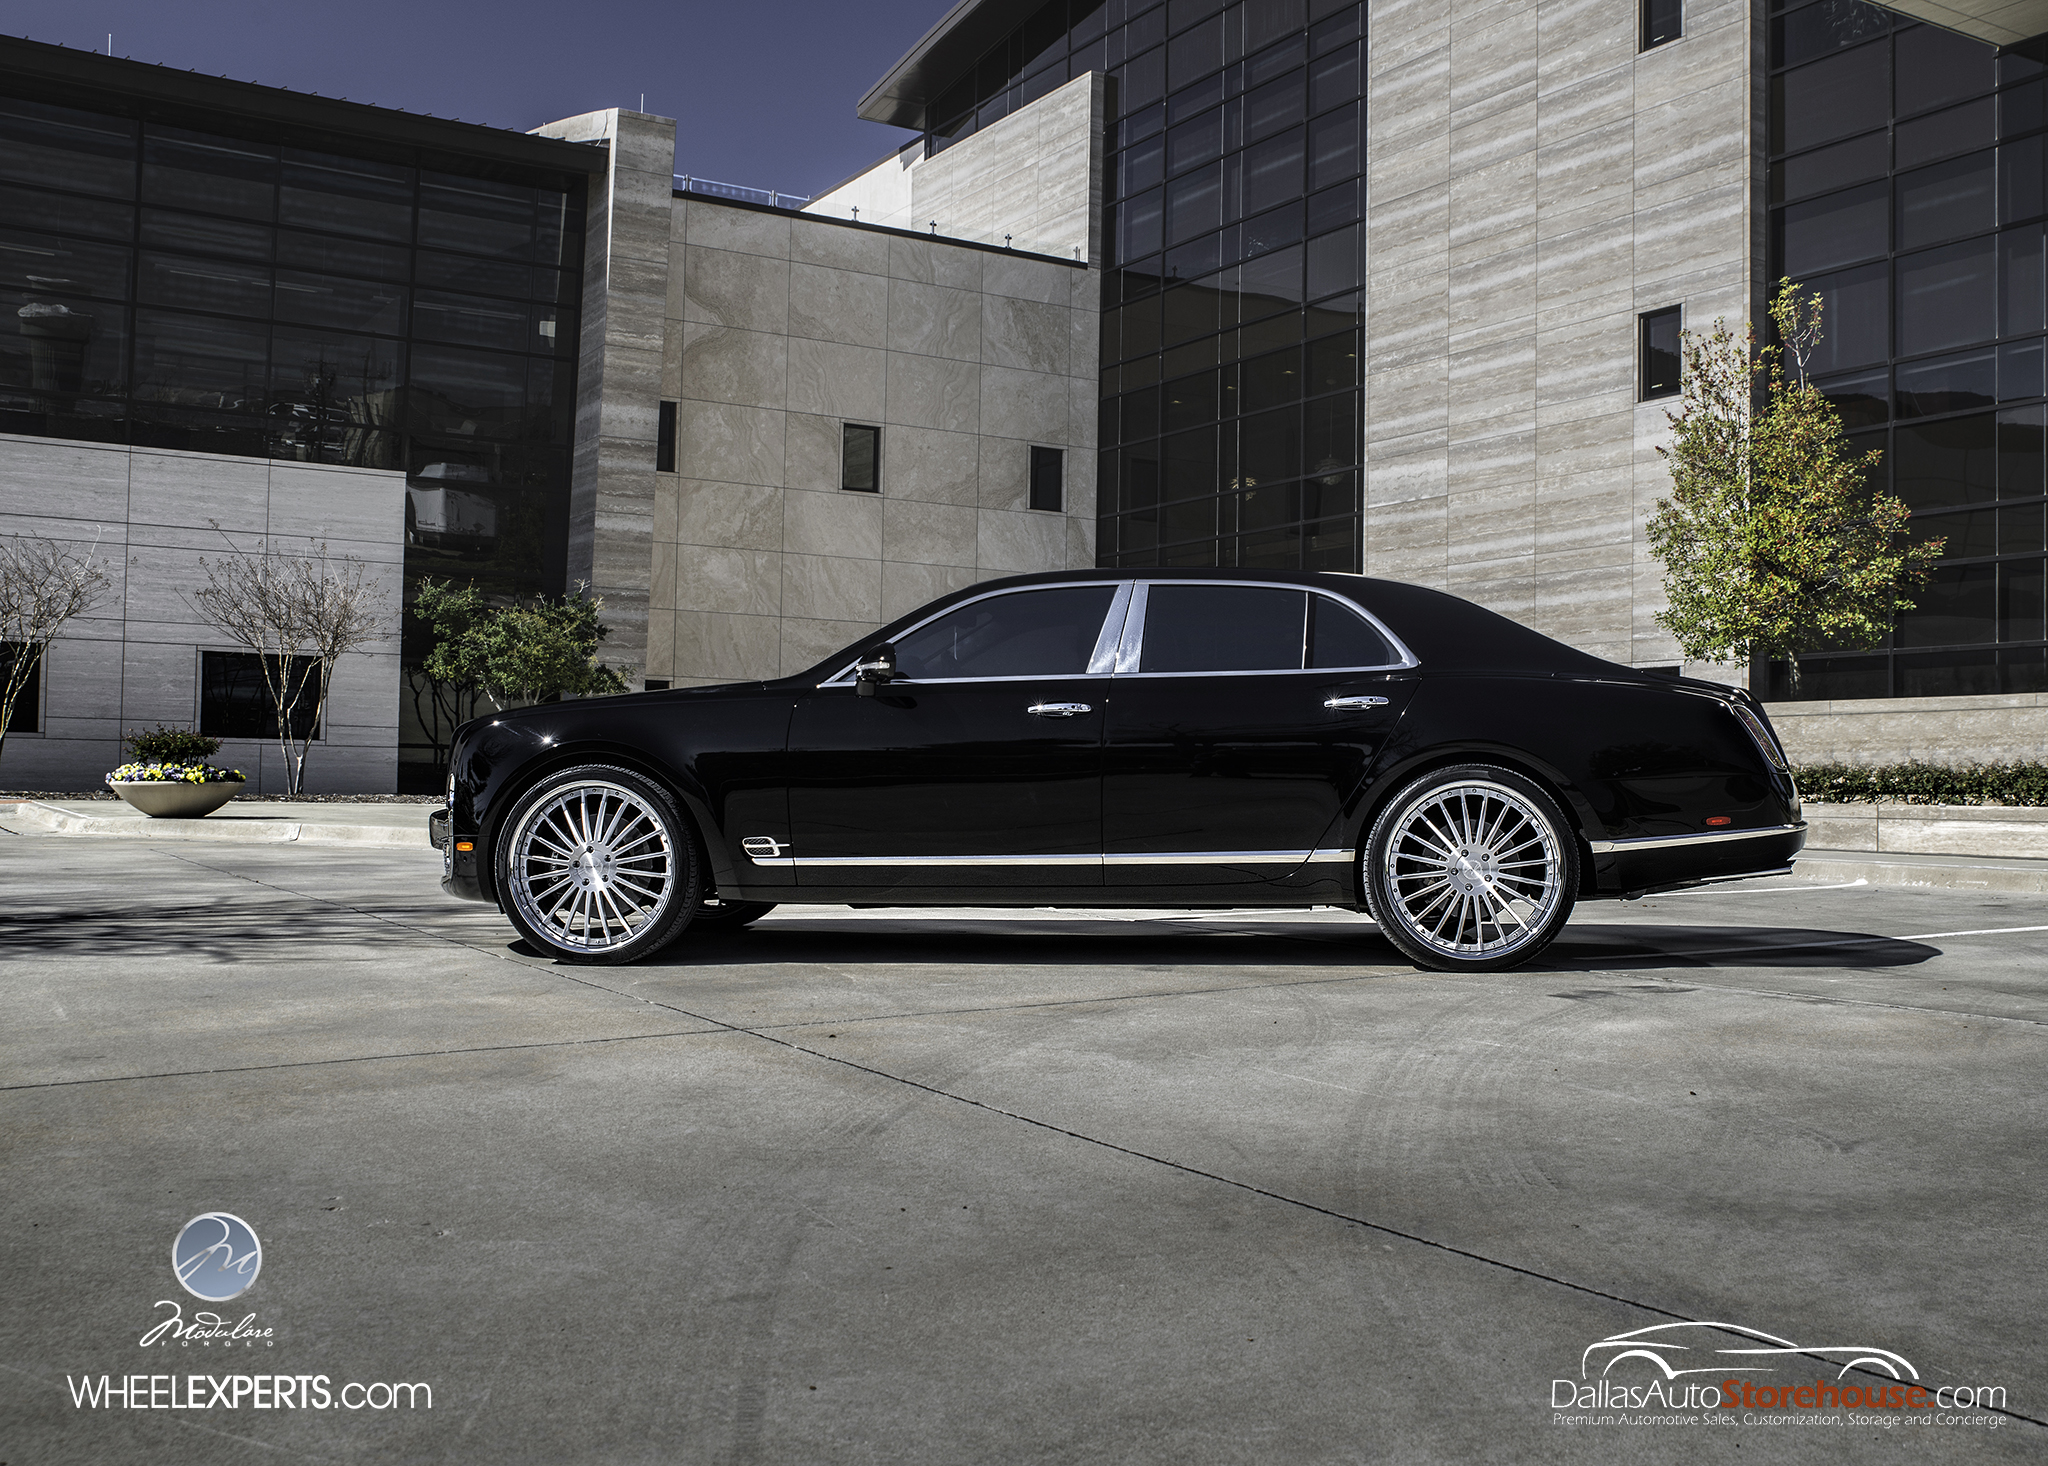 photo 5 Bentley Mulsanne Wheels Modulare M20 24x10.0, ET , tire size 285/30 R24. x ET